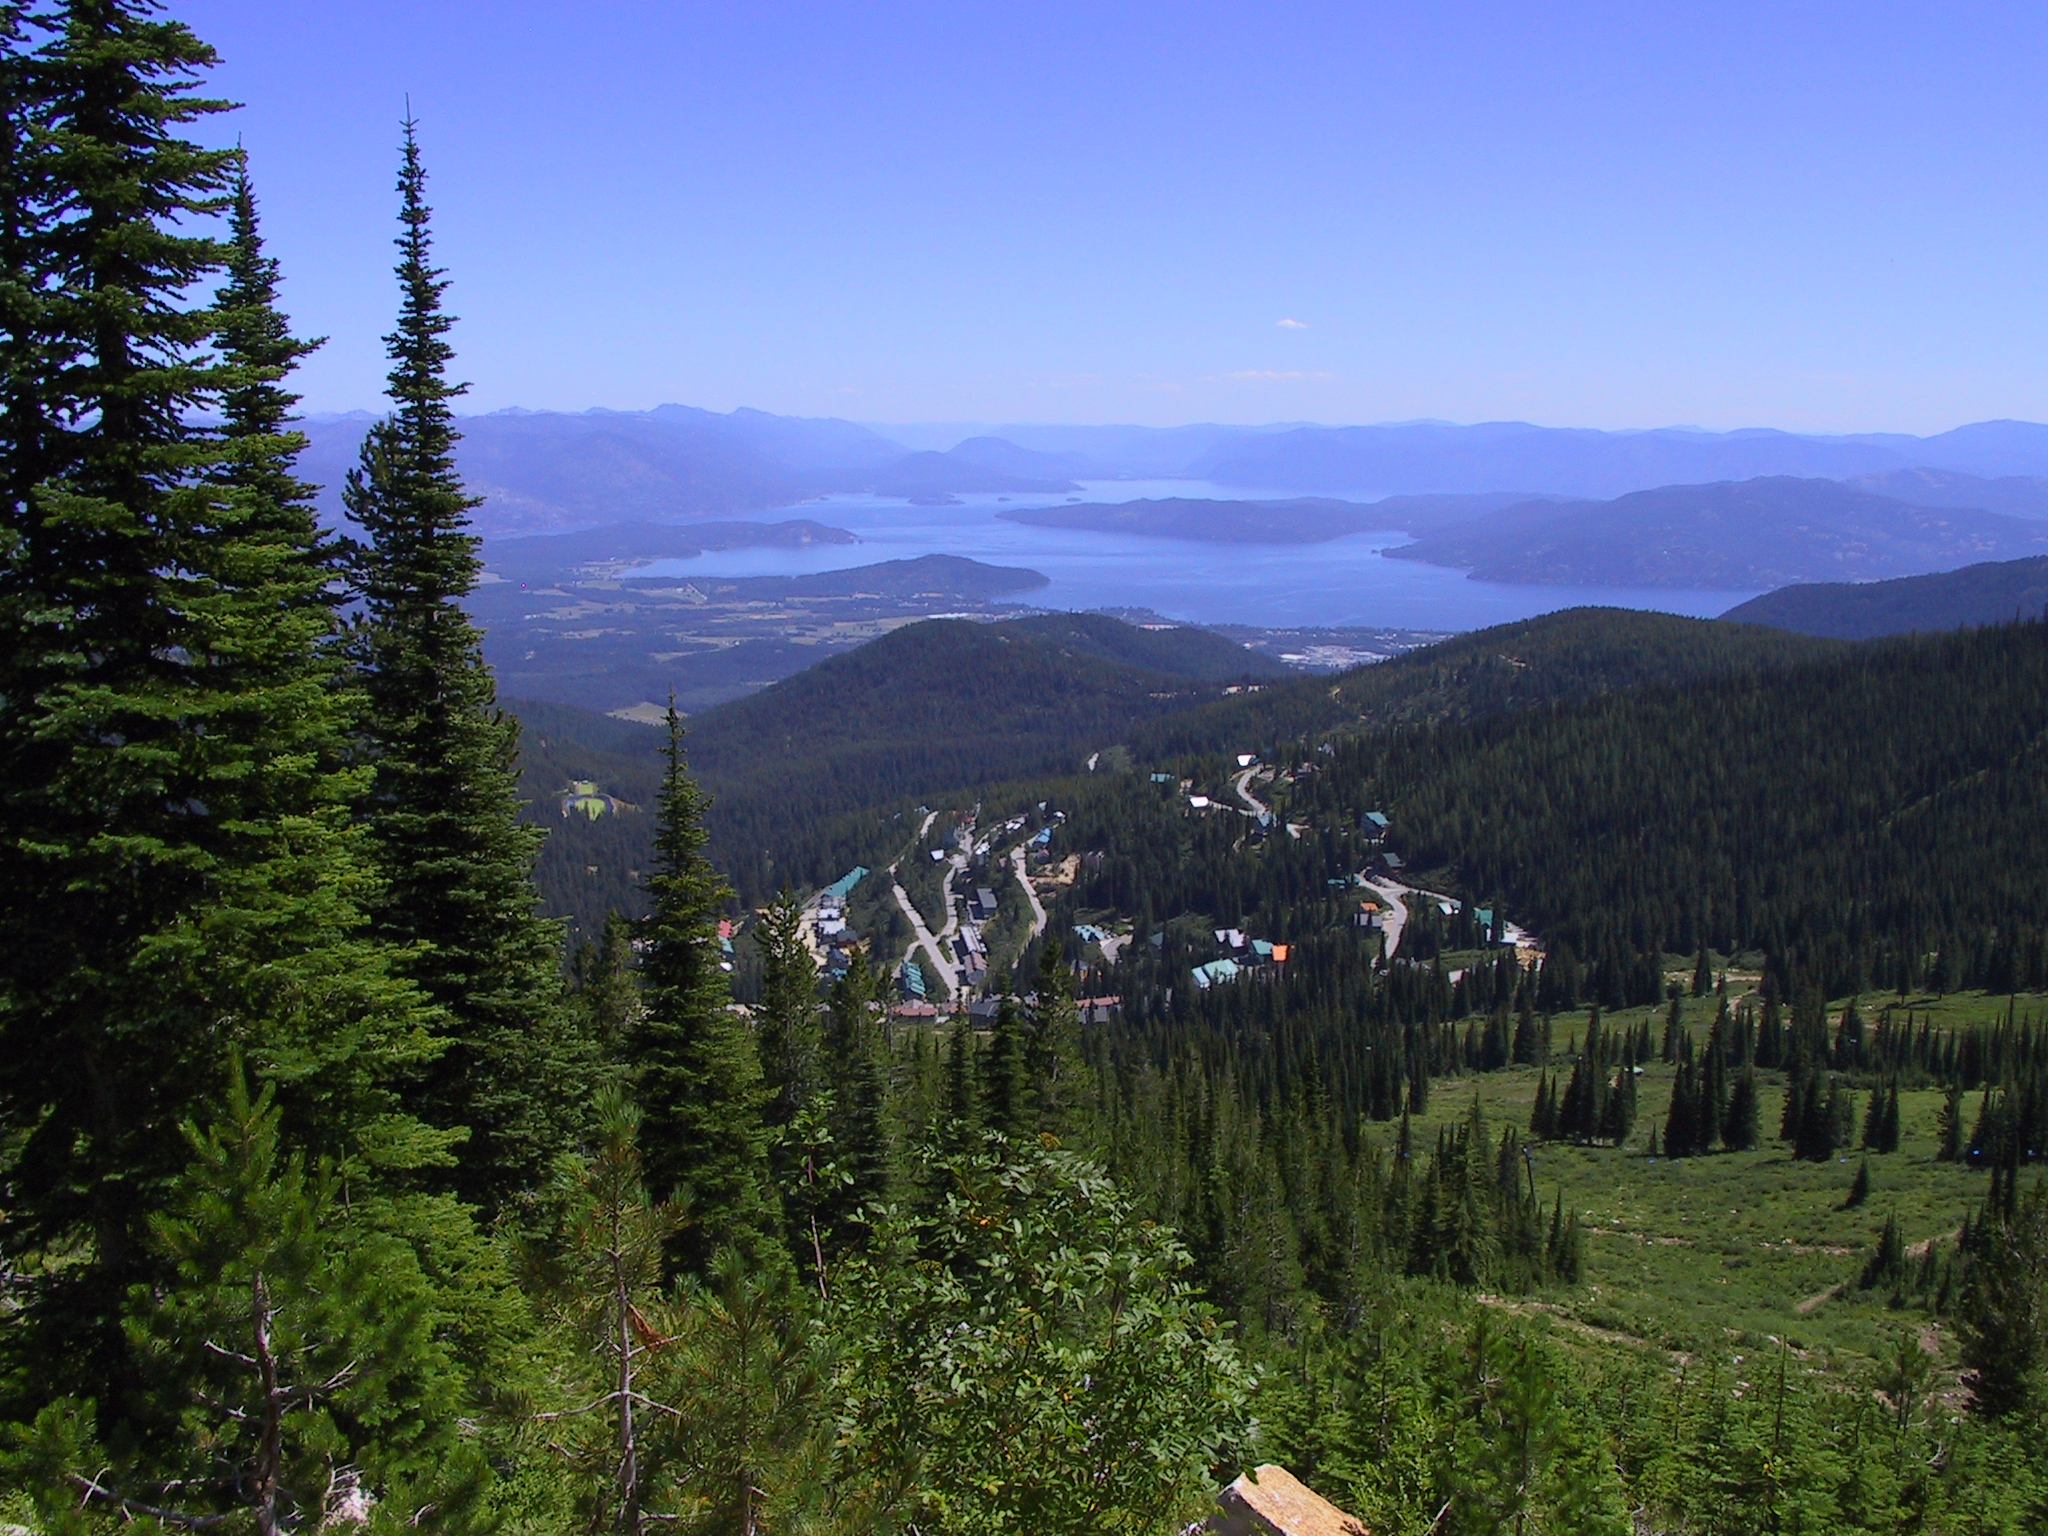 Sandpoint Idaho from Schweitzer photo by Alvin Feng via Flickr Creative Commons